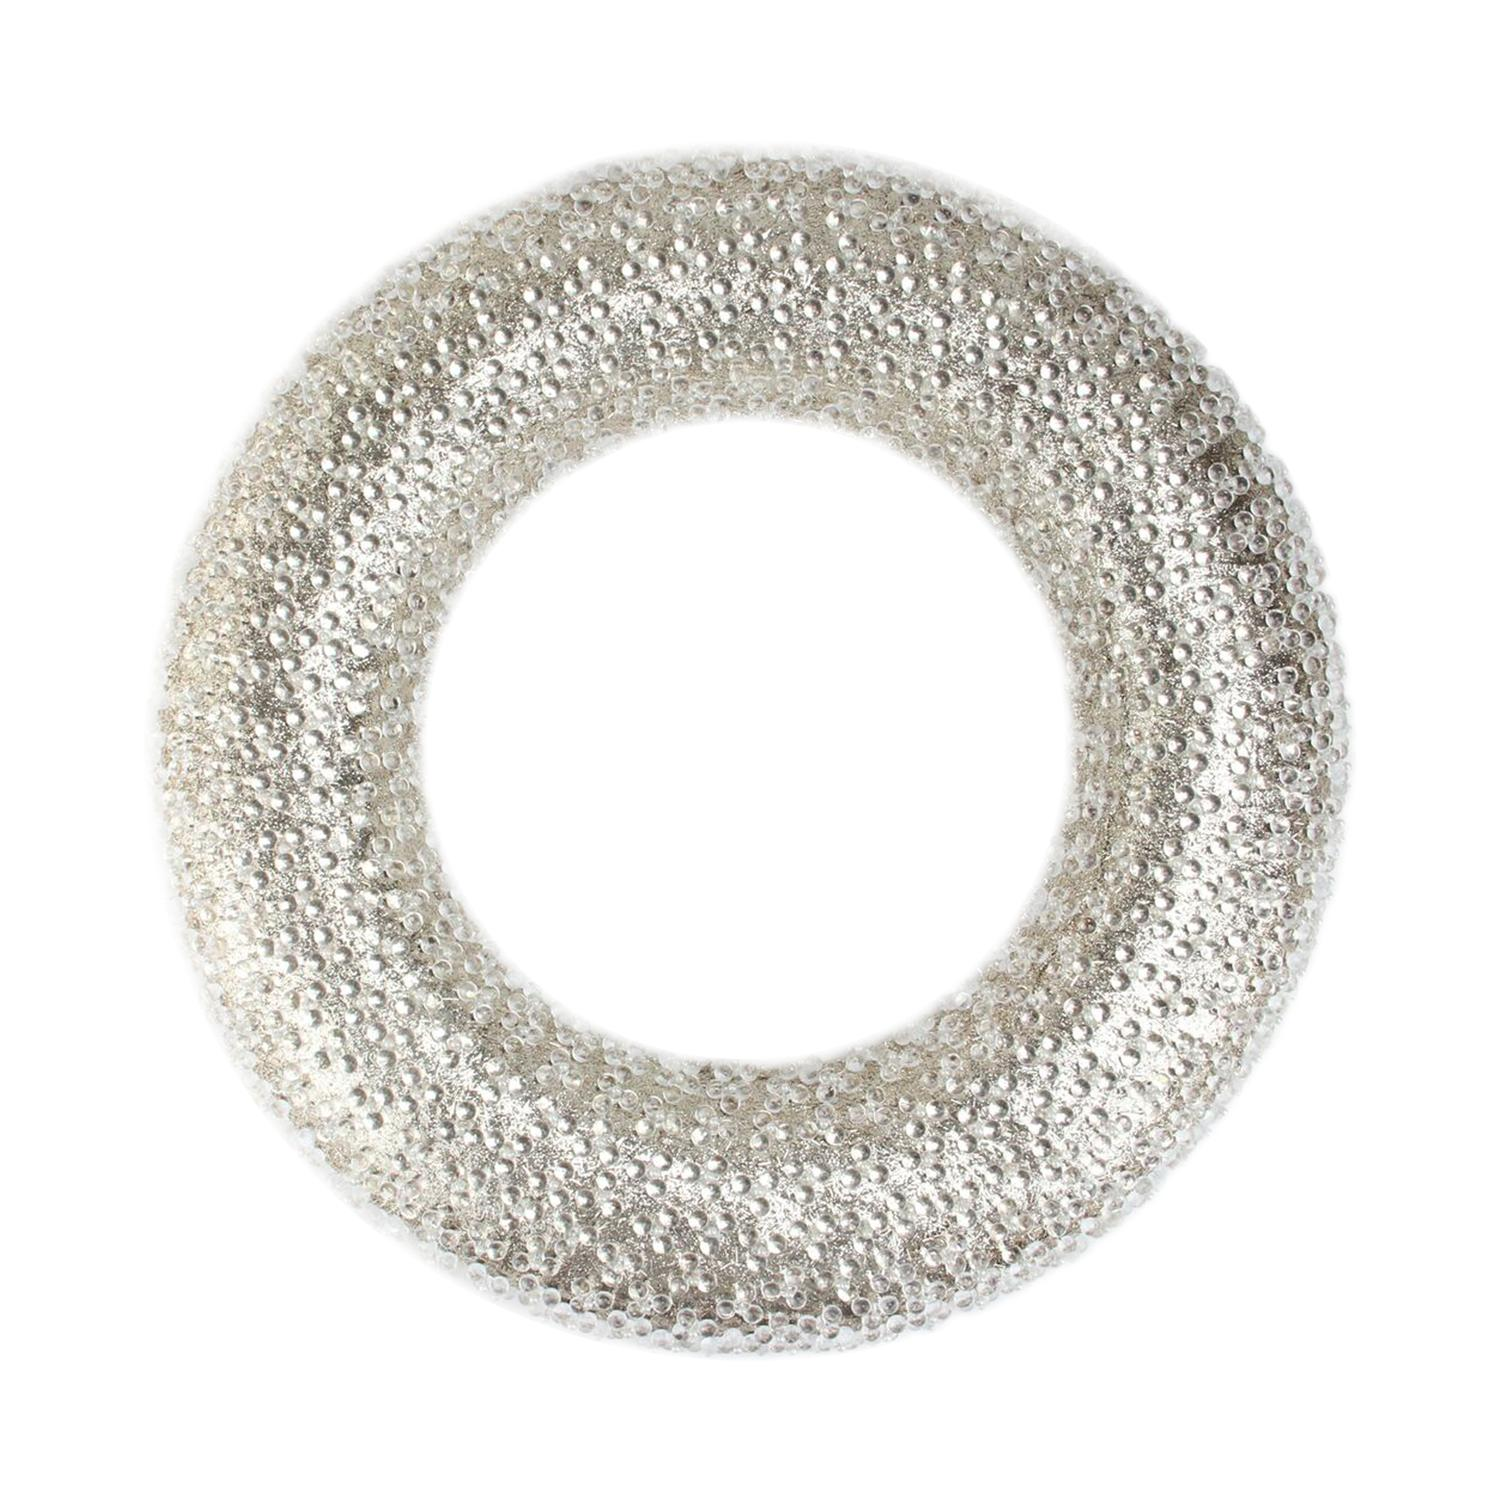 Northlight 20 in. All That Glitters Bead and Gold Glitter Christmas Wreath